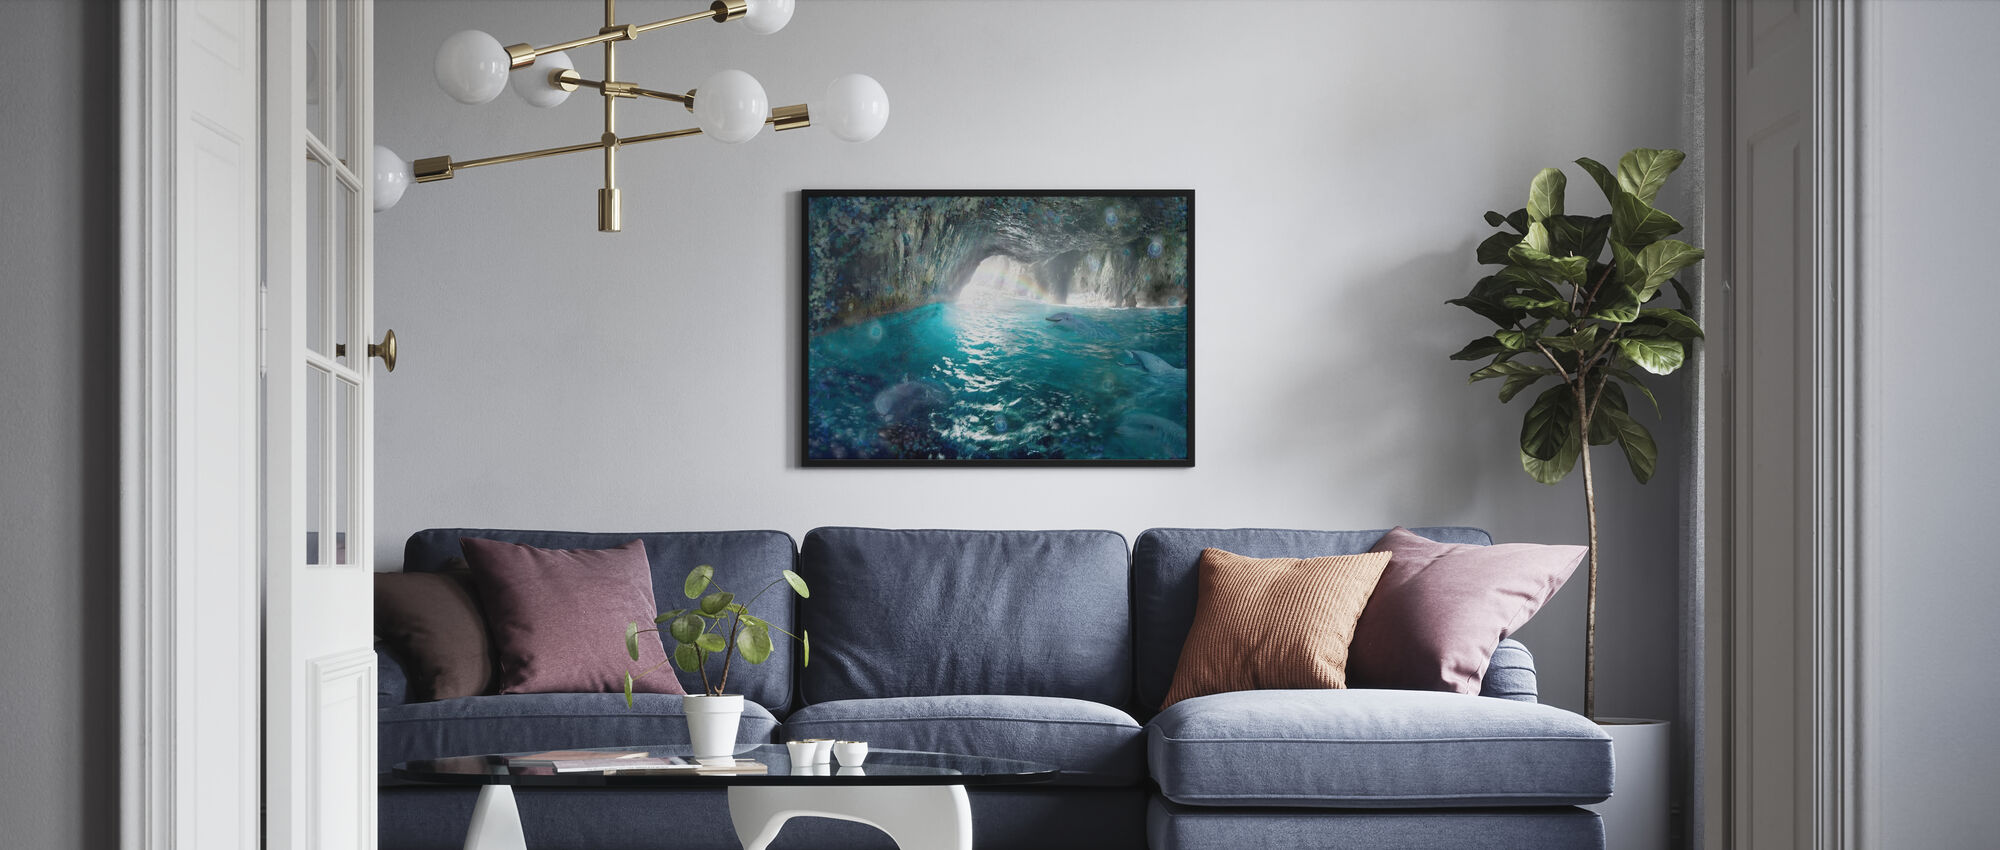 Dolphin Seacave - Framed print - Living Room